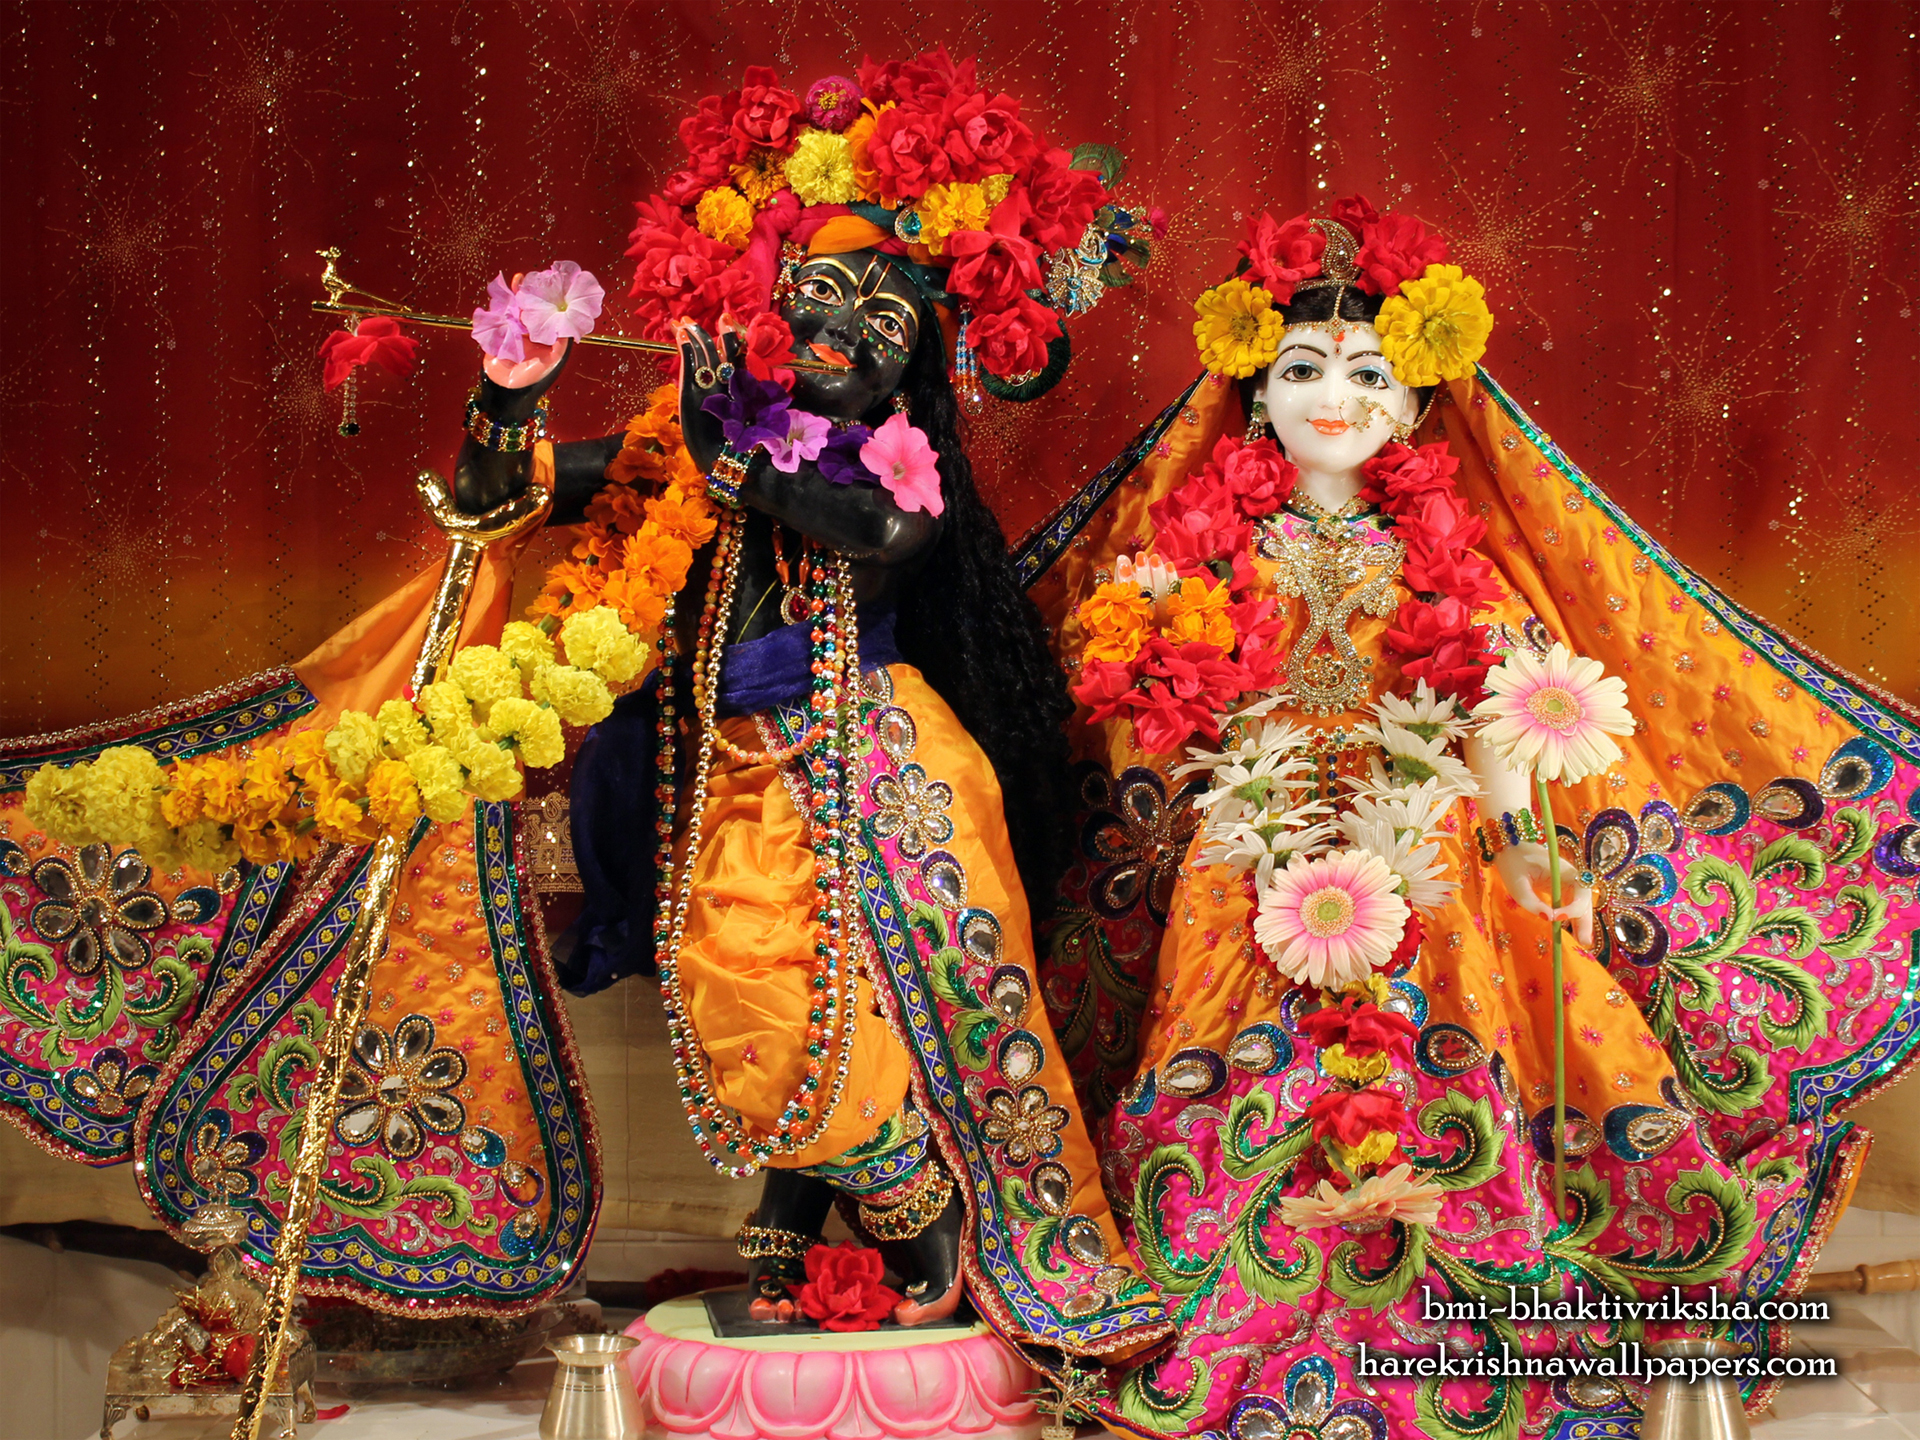 Sri Sri Radha Shyamsundar Wallpaper (001) Size 1920x1440 Download